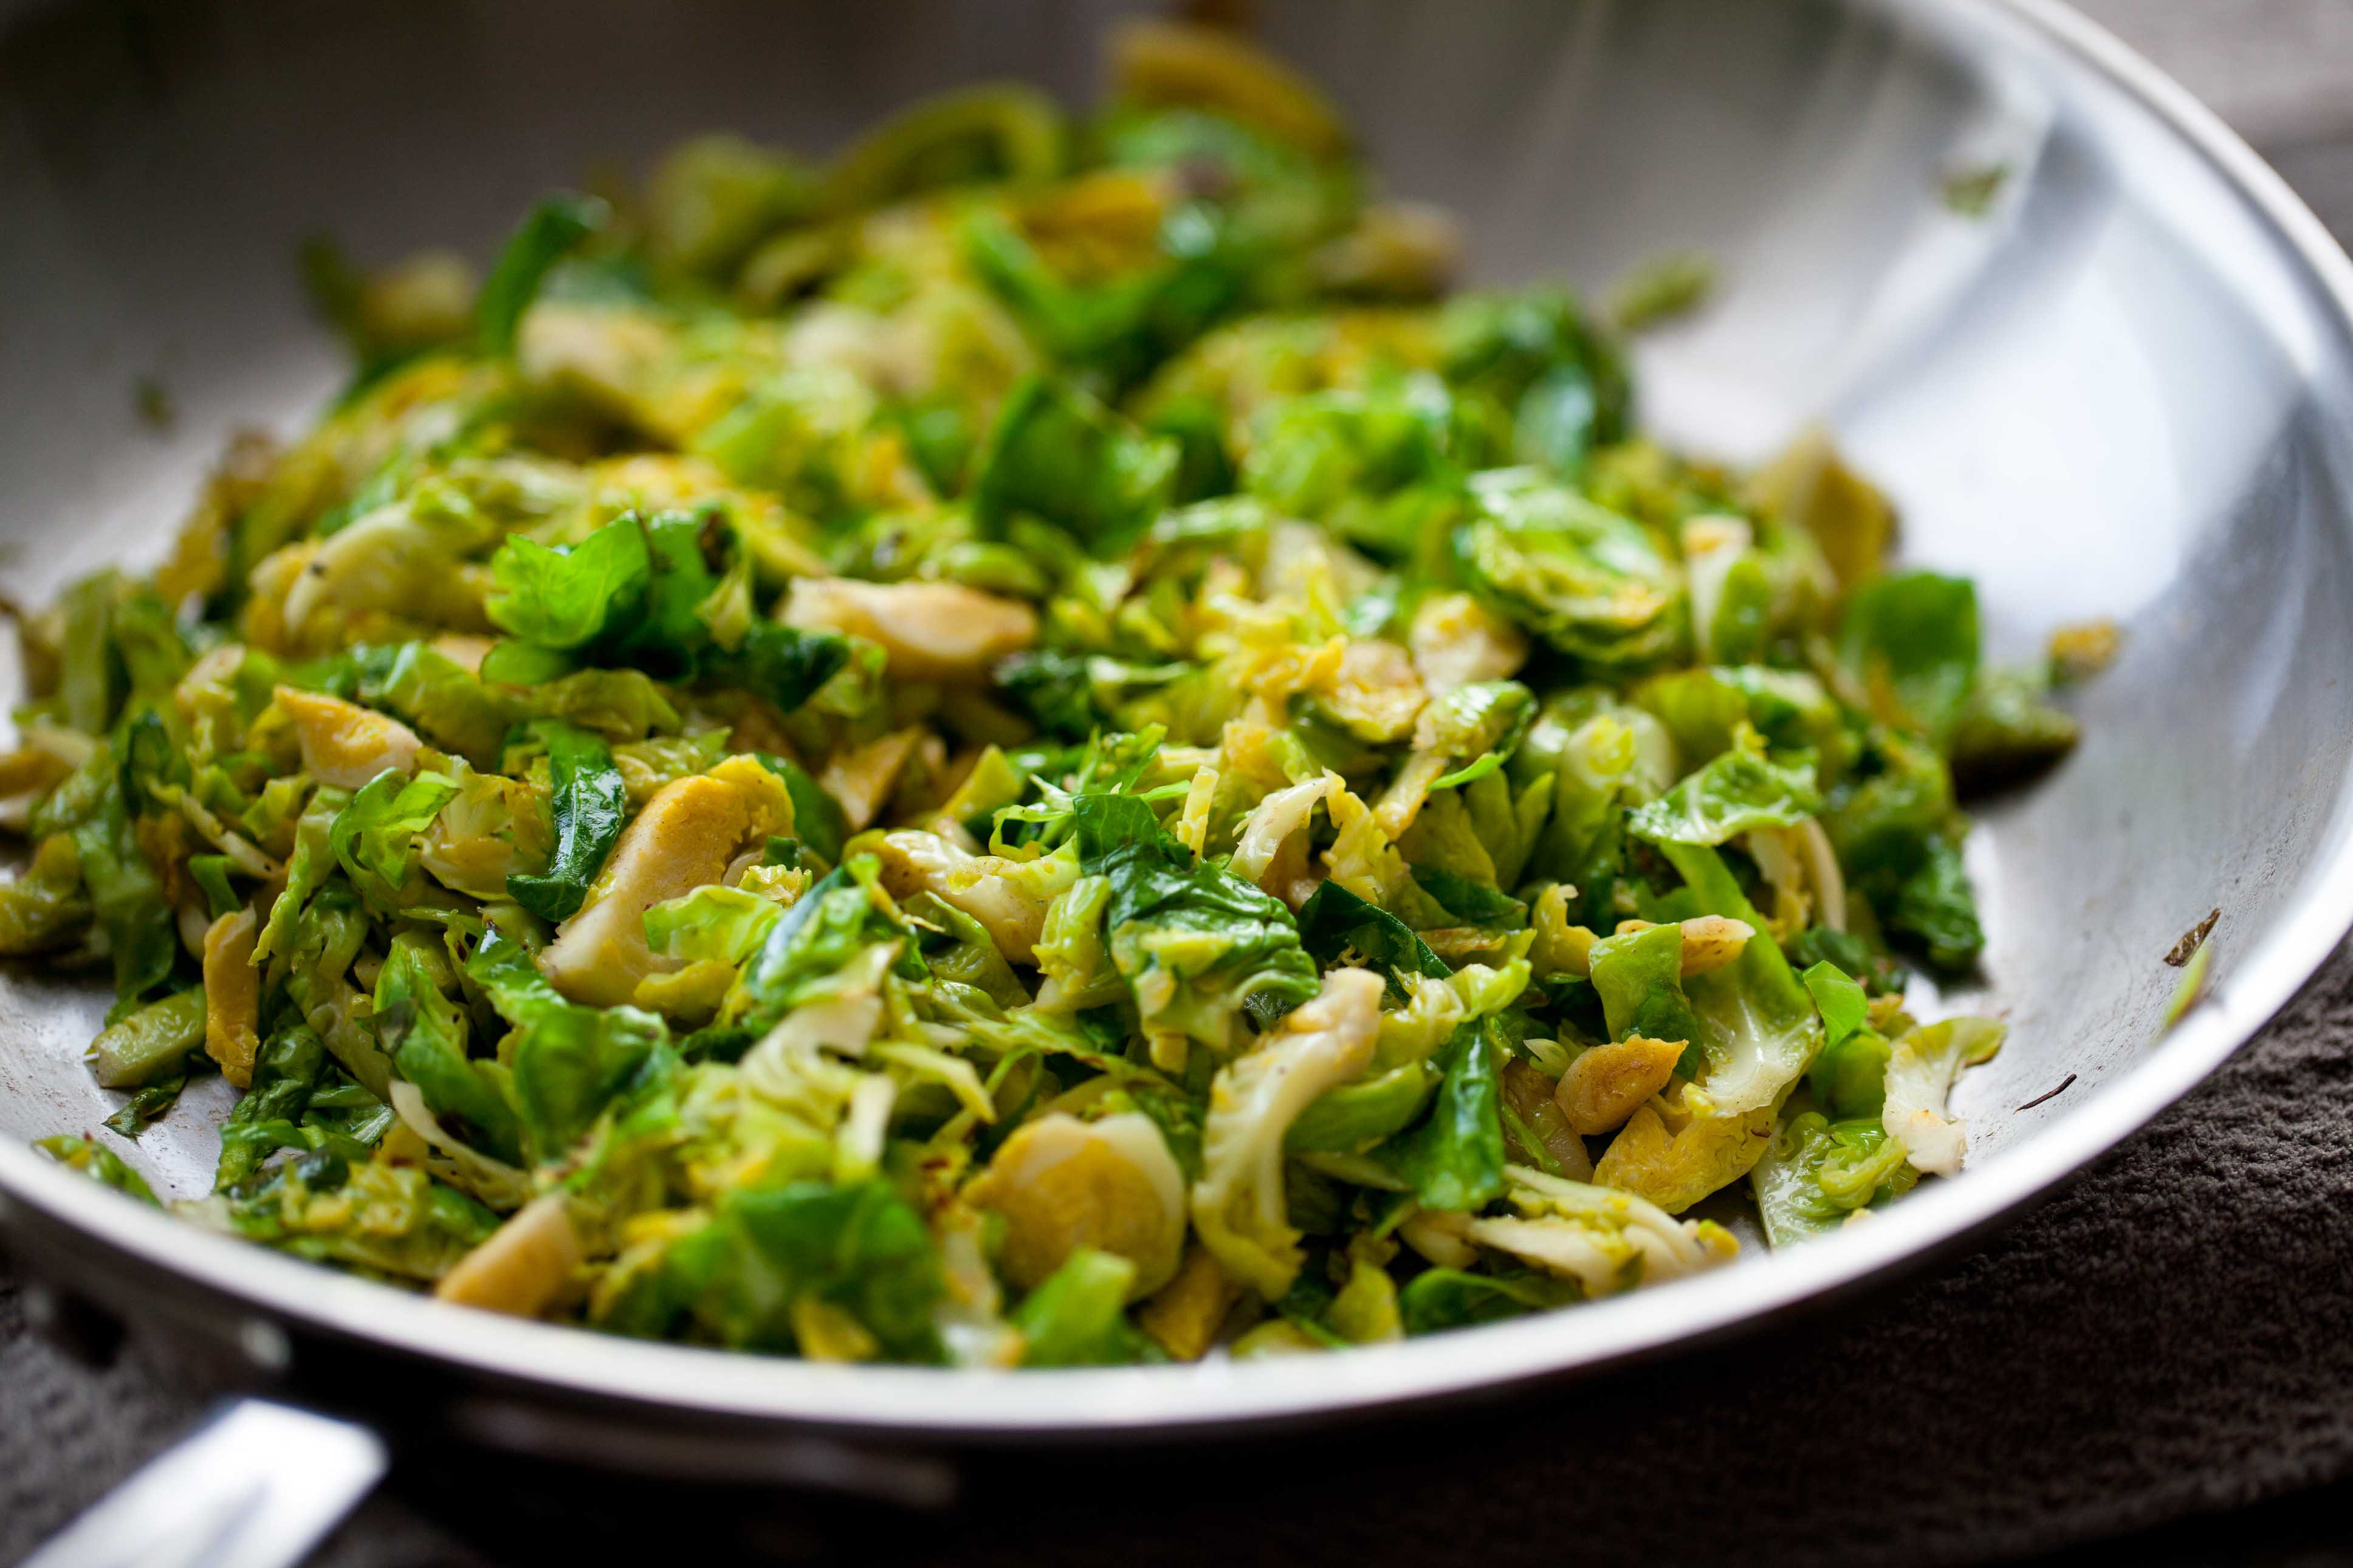 Shredded Brussel Sprout Recipe